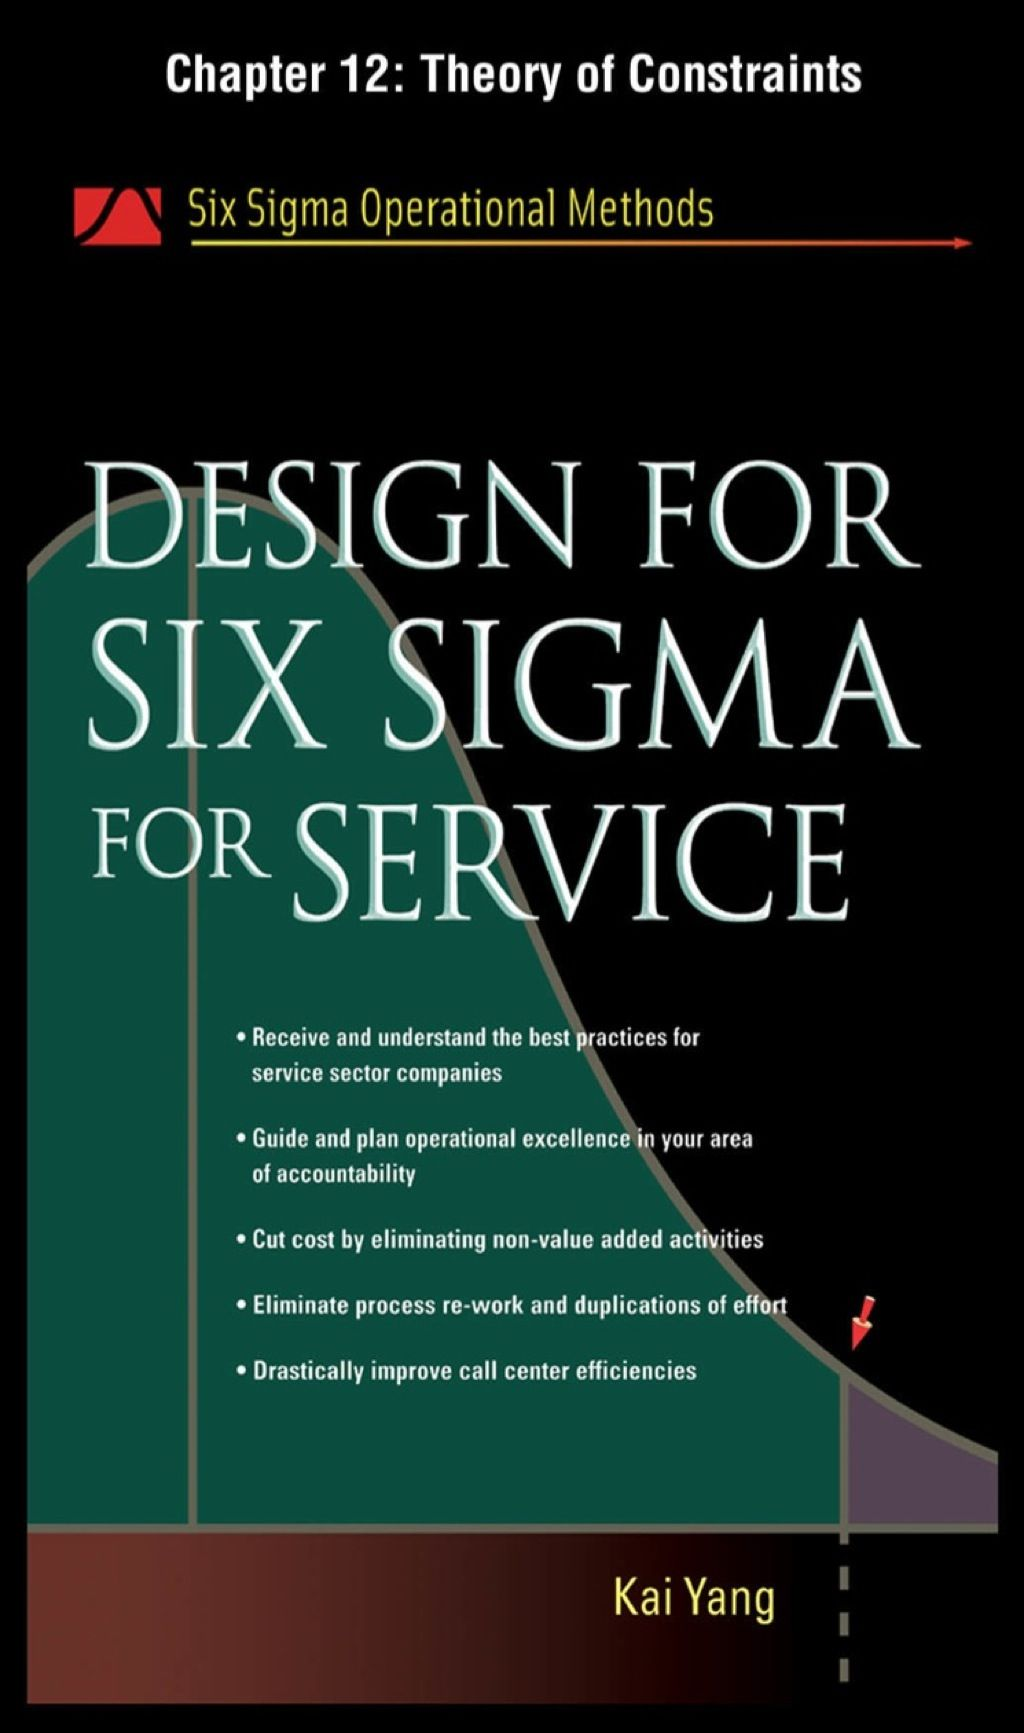 Design For Six Sigma For Service Chapter 12 Theory Of Constraints Ebook Survey Design Customer Survey Operational Excellence